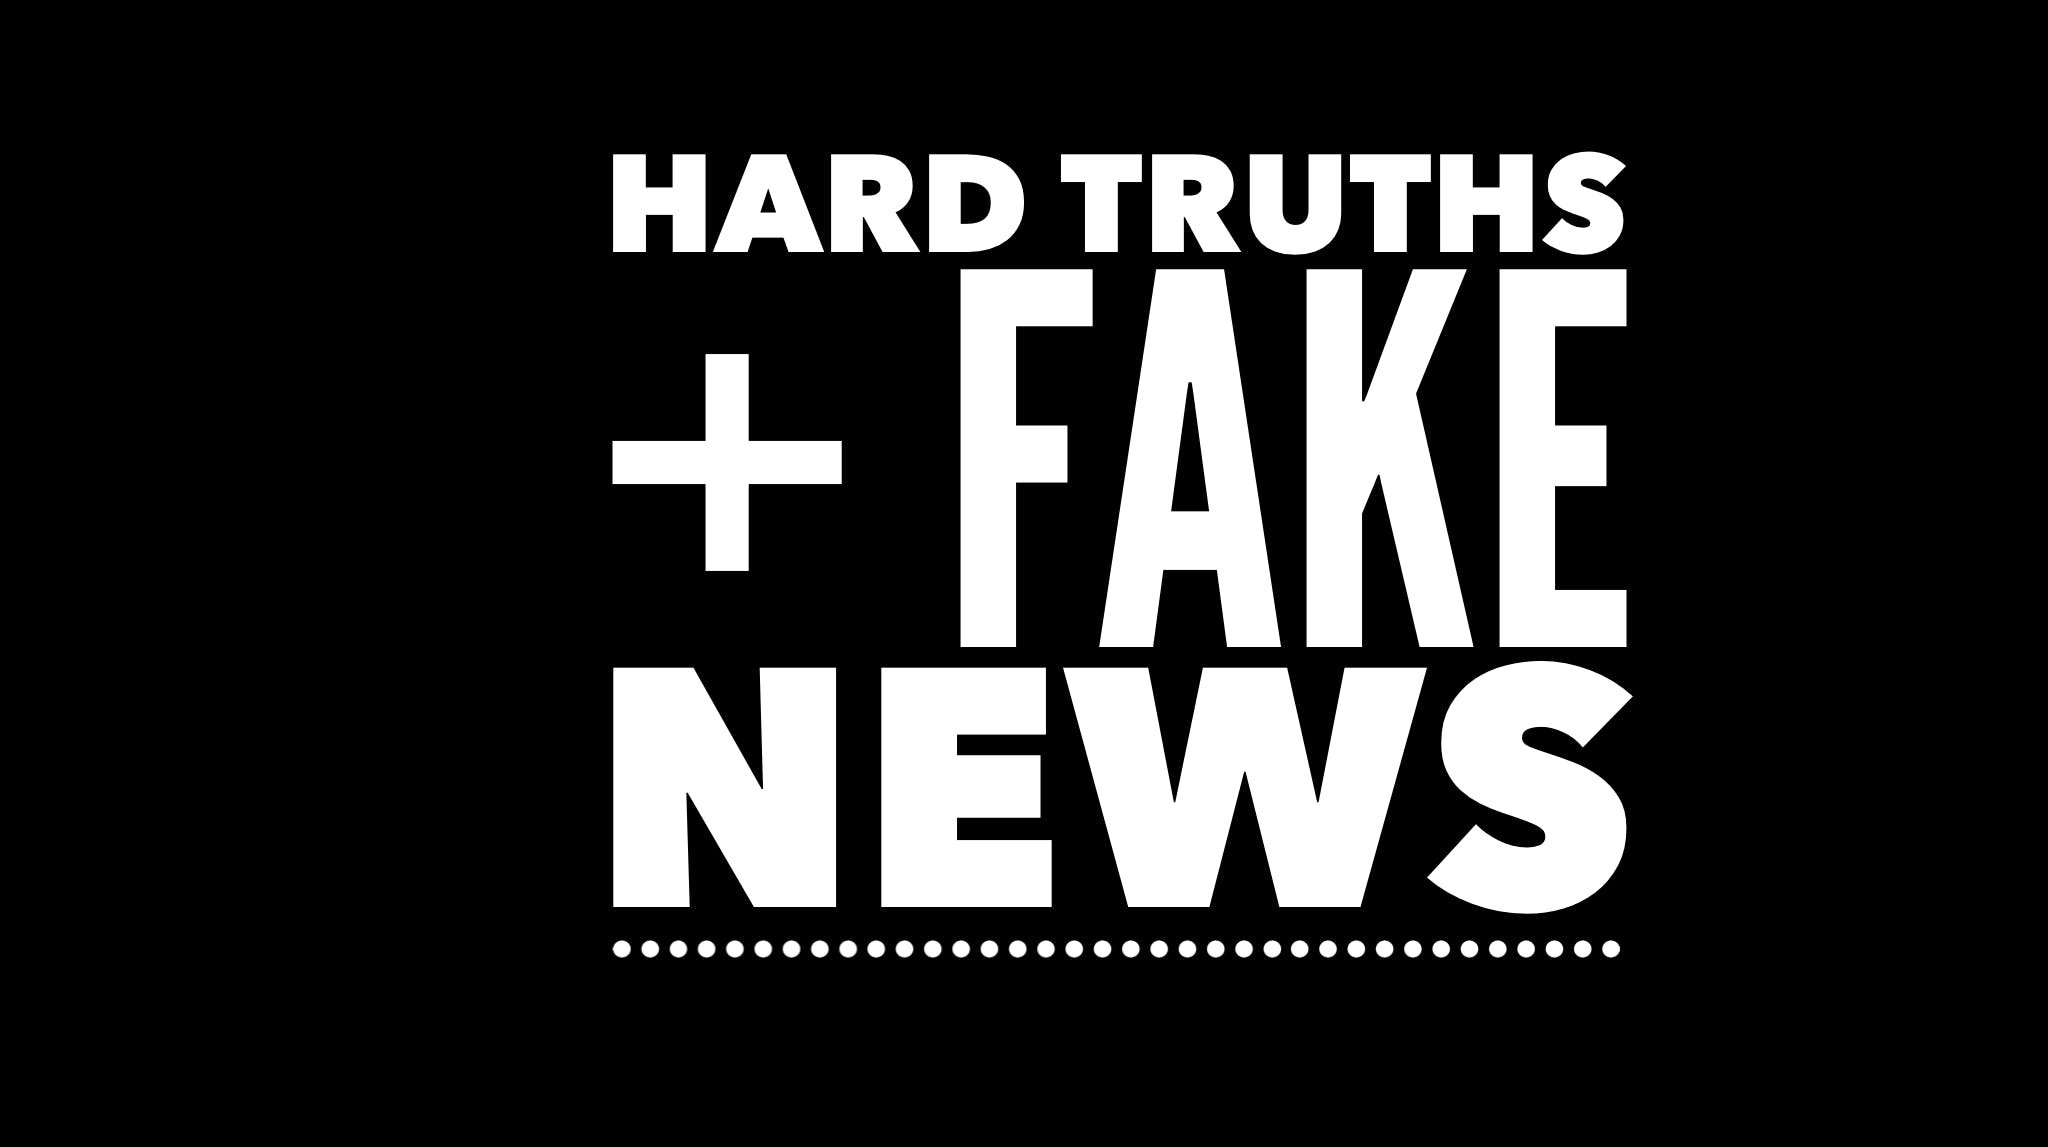 Hard truths + fake news: A 2019 election boot